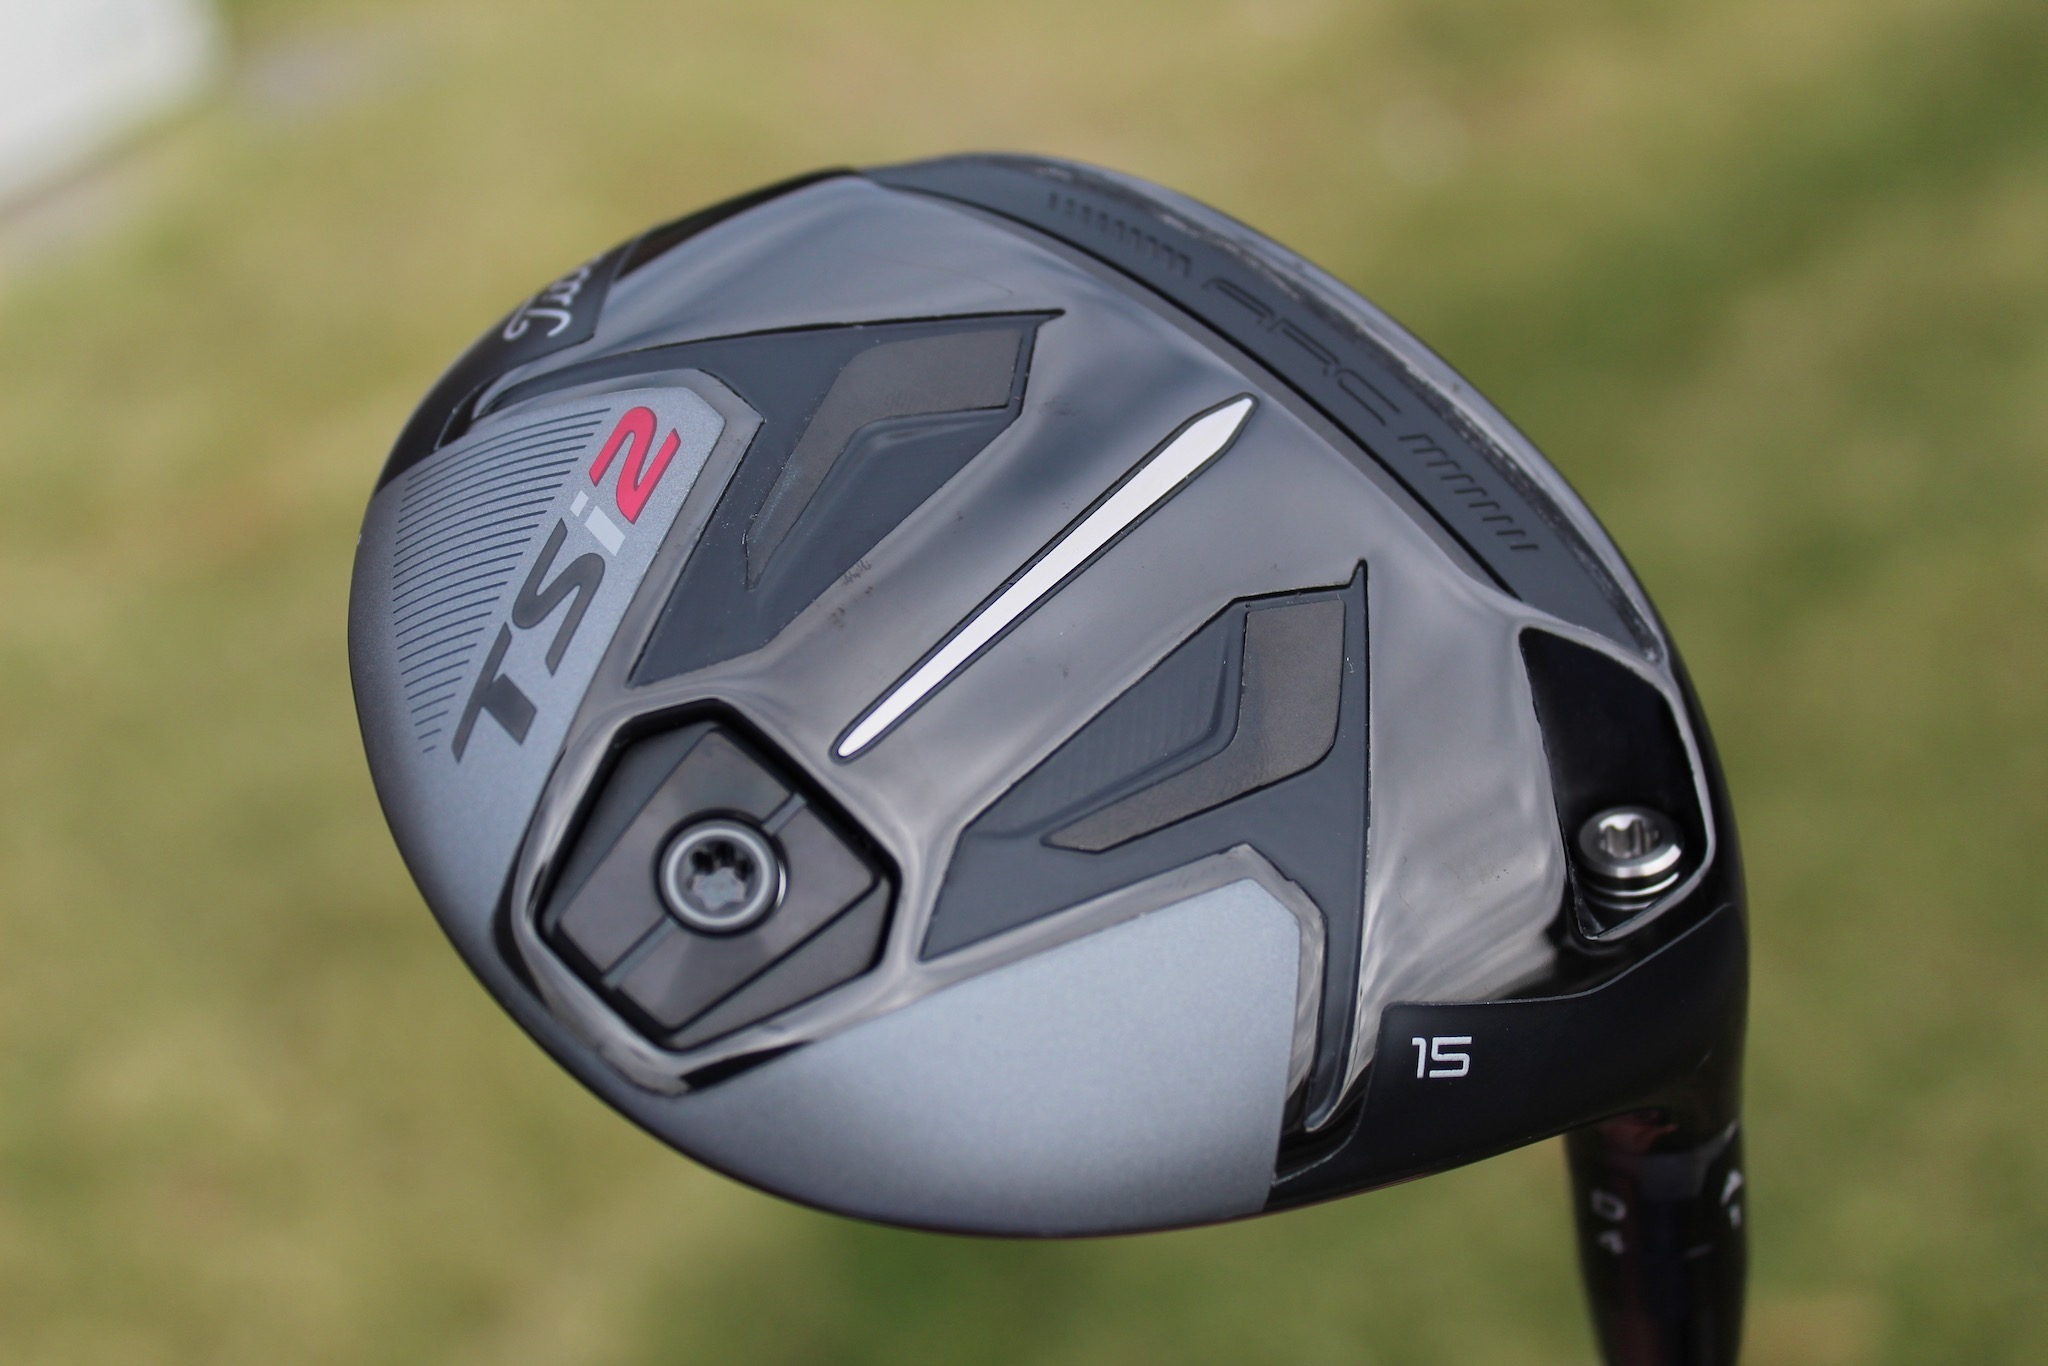 2021-titleist-tsi2-fairway-wood-featured